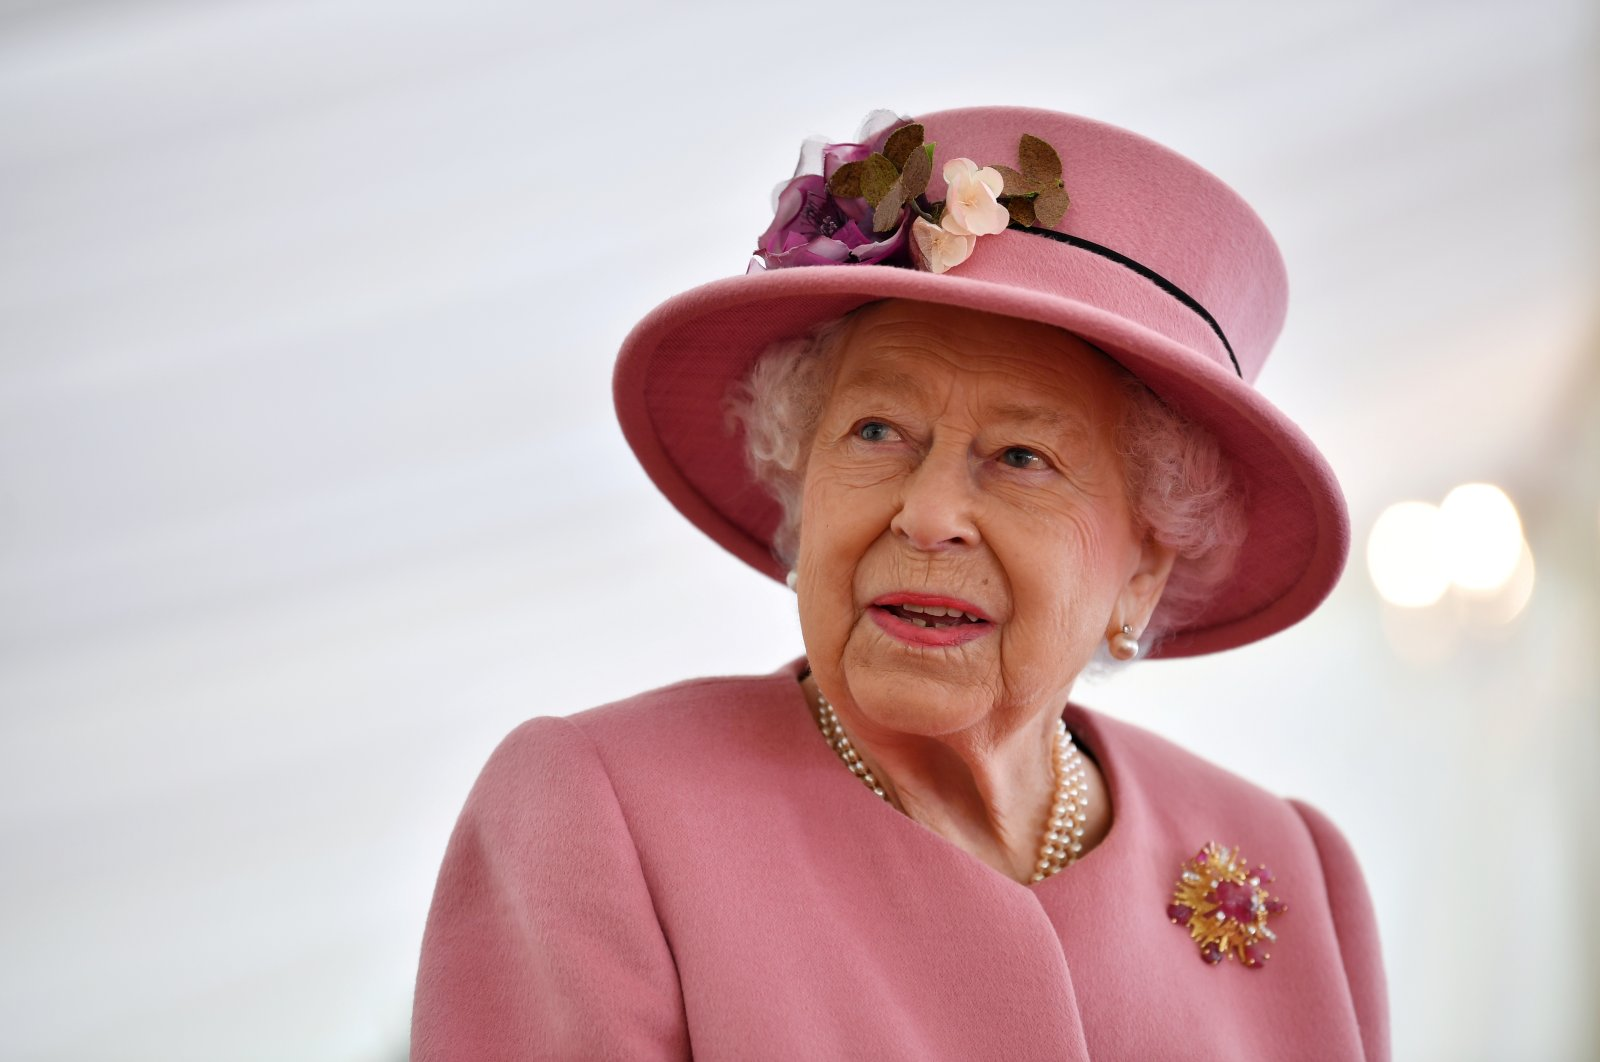 Britain's Queen Elizabeth speaks with staff during a visit to the Defence Science and Technology Laboratory at Porton Science Park near Salisbury, U.K., Oct. 15, 2020. (Reuters Photo)